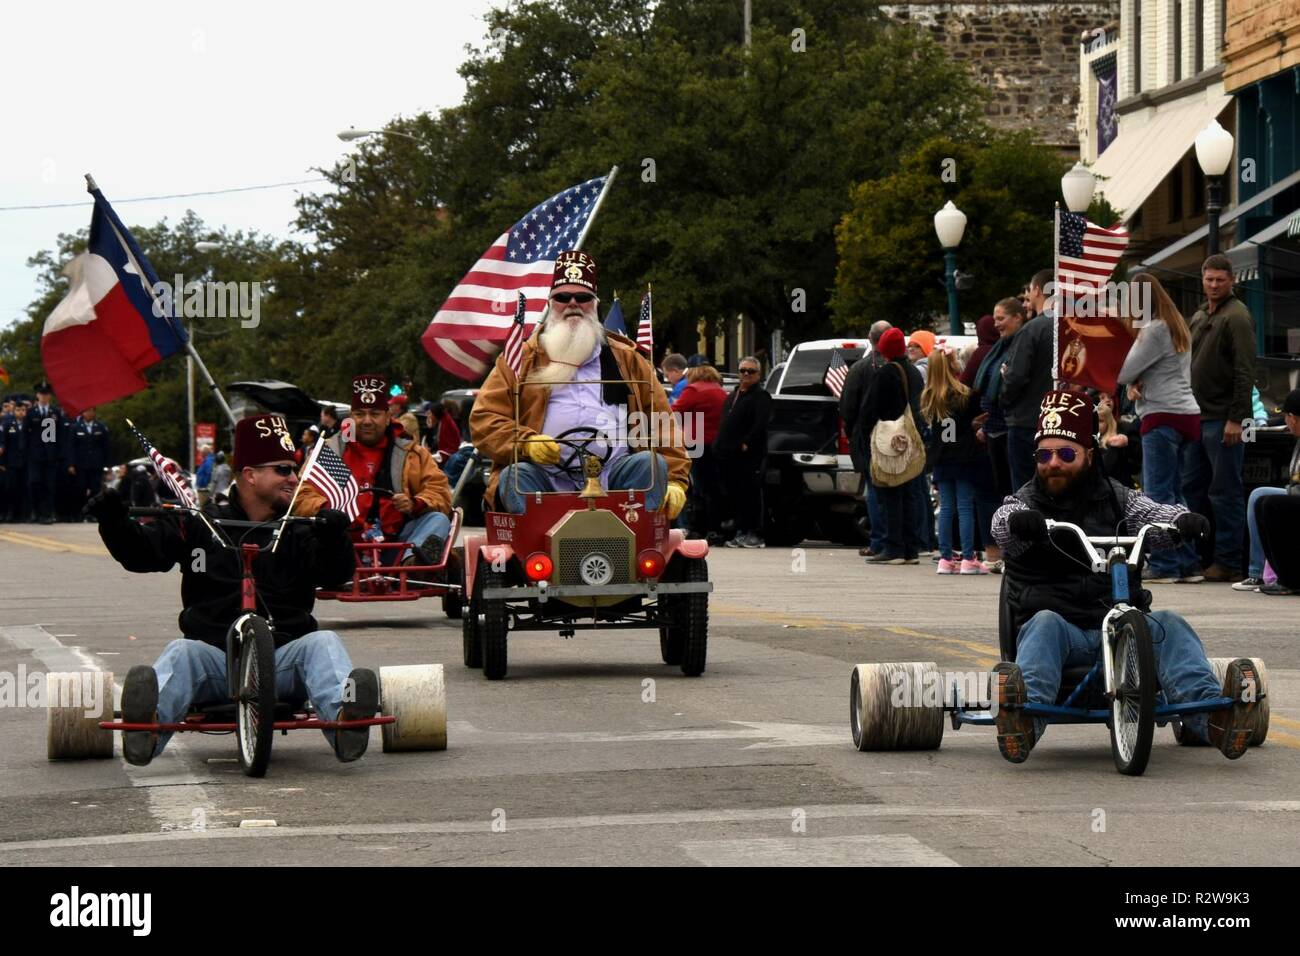 54359cd761a0 Members from the Suez Shriners